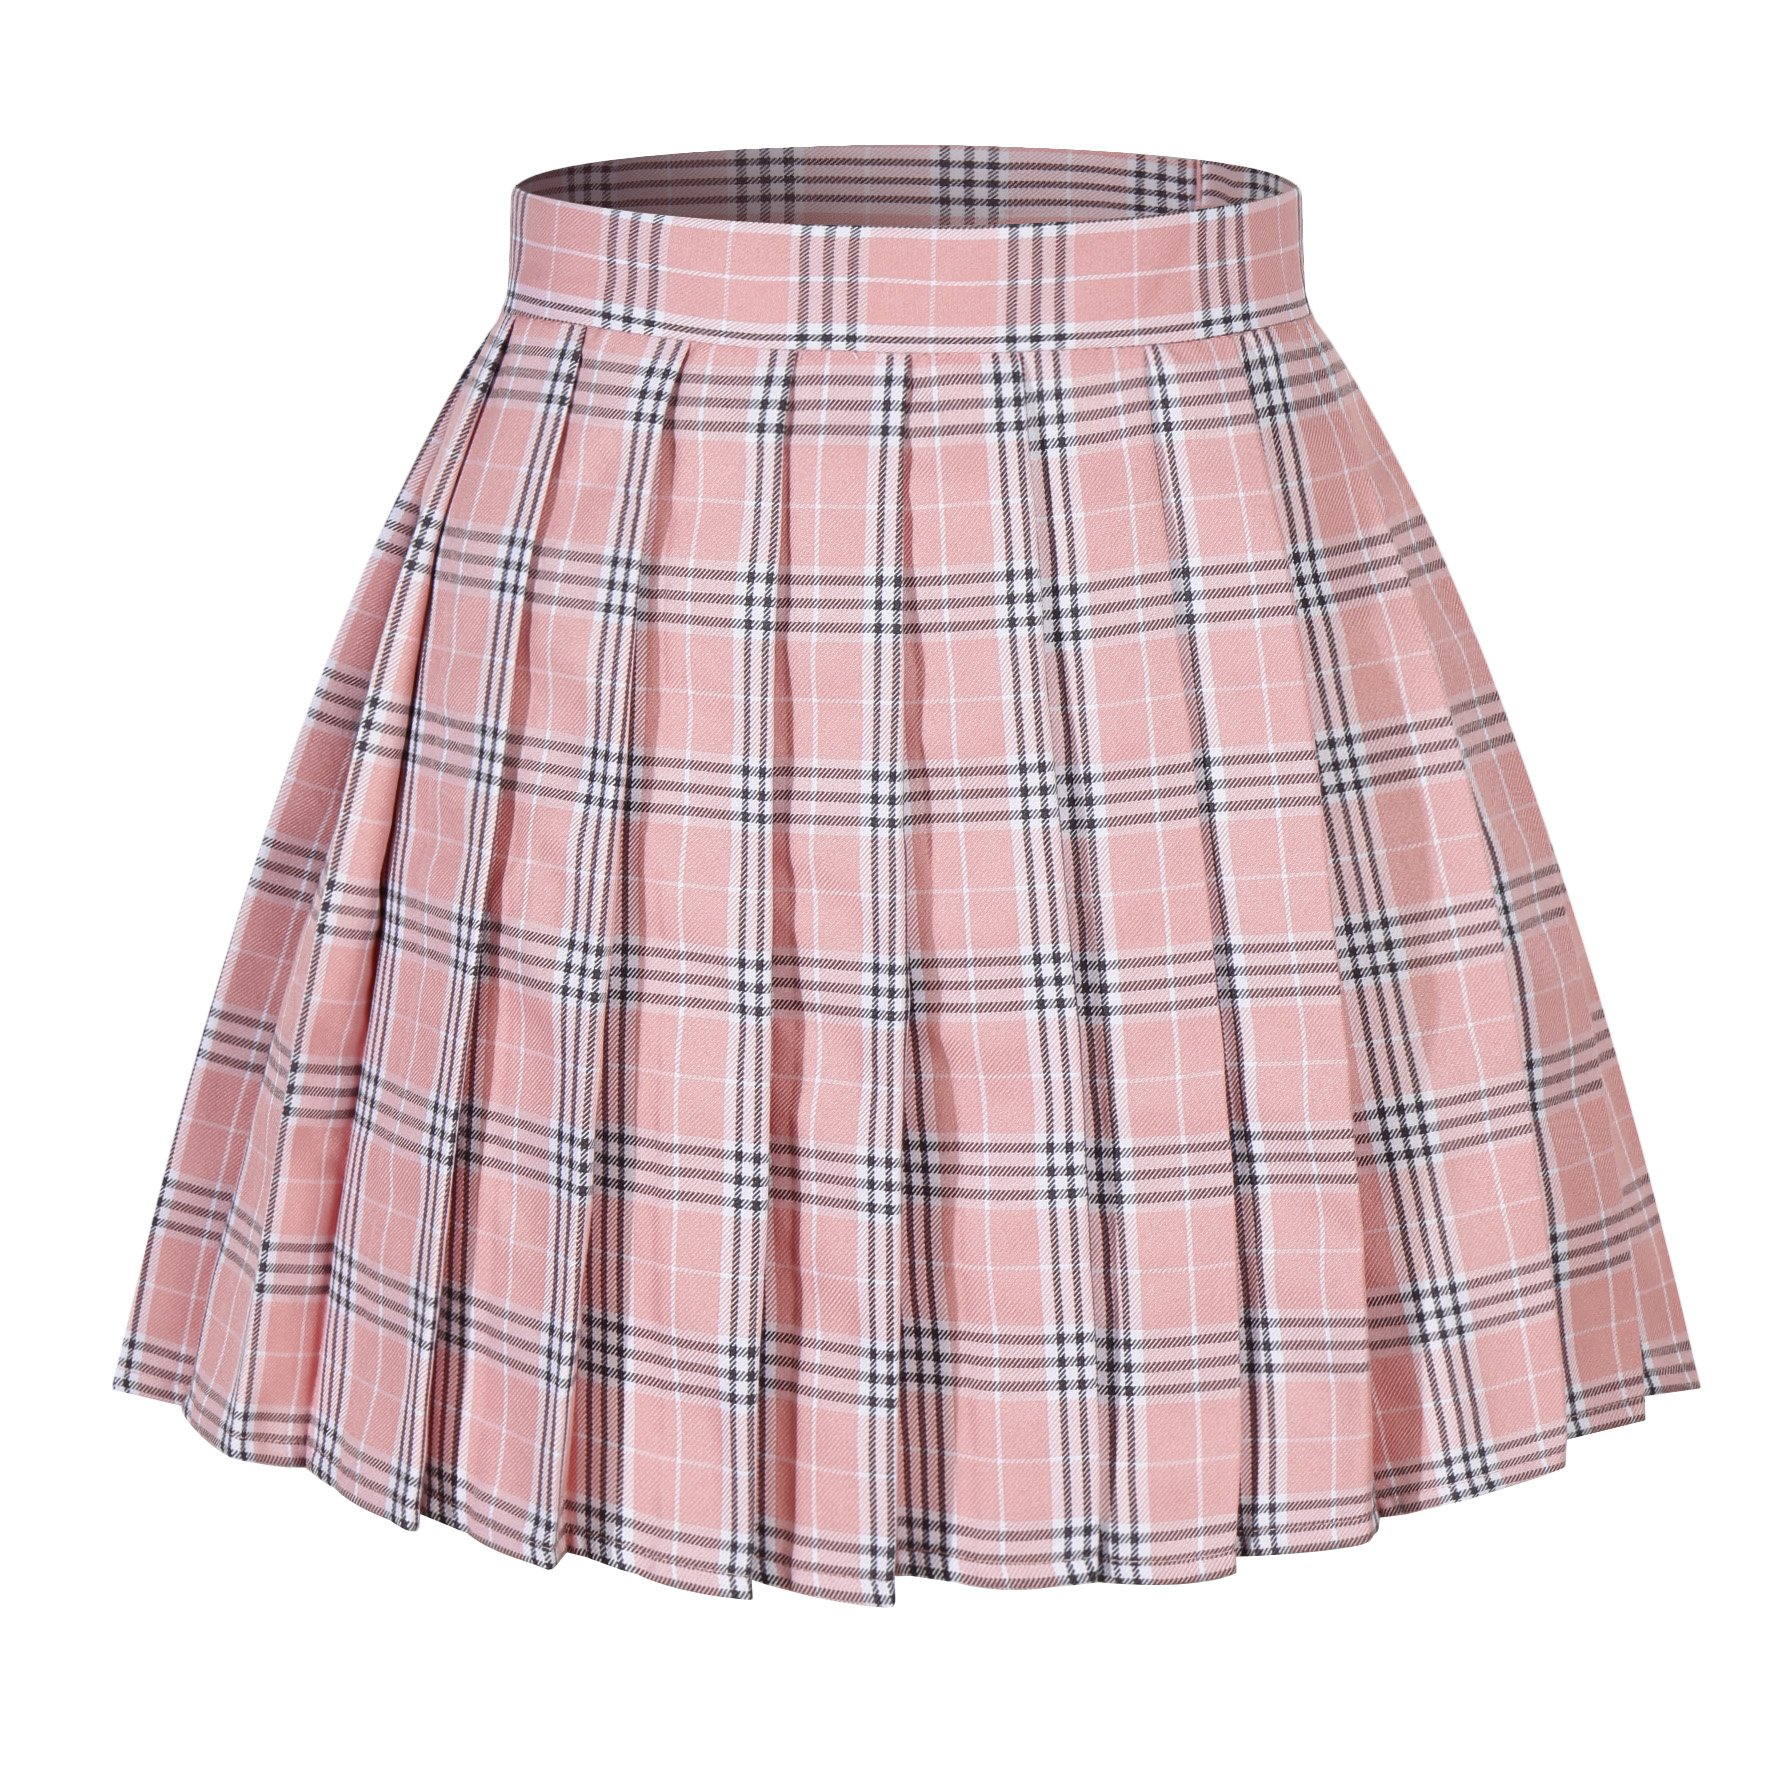 a88c01edacc5 Galleon - Women`s Floral Flared Tartan Check Pleated Skirts(4XL,Pink Mixed White  Black)